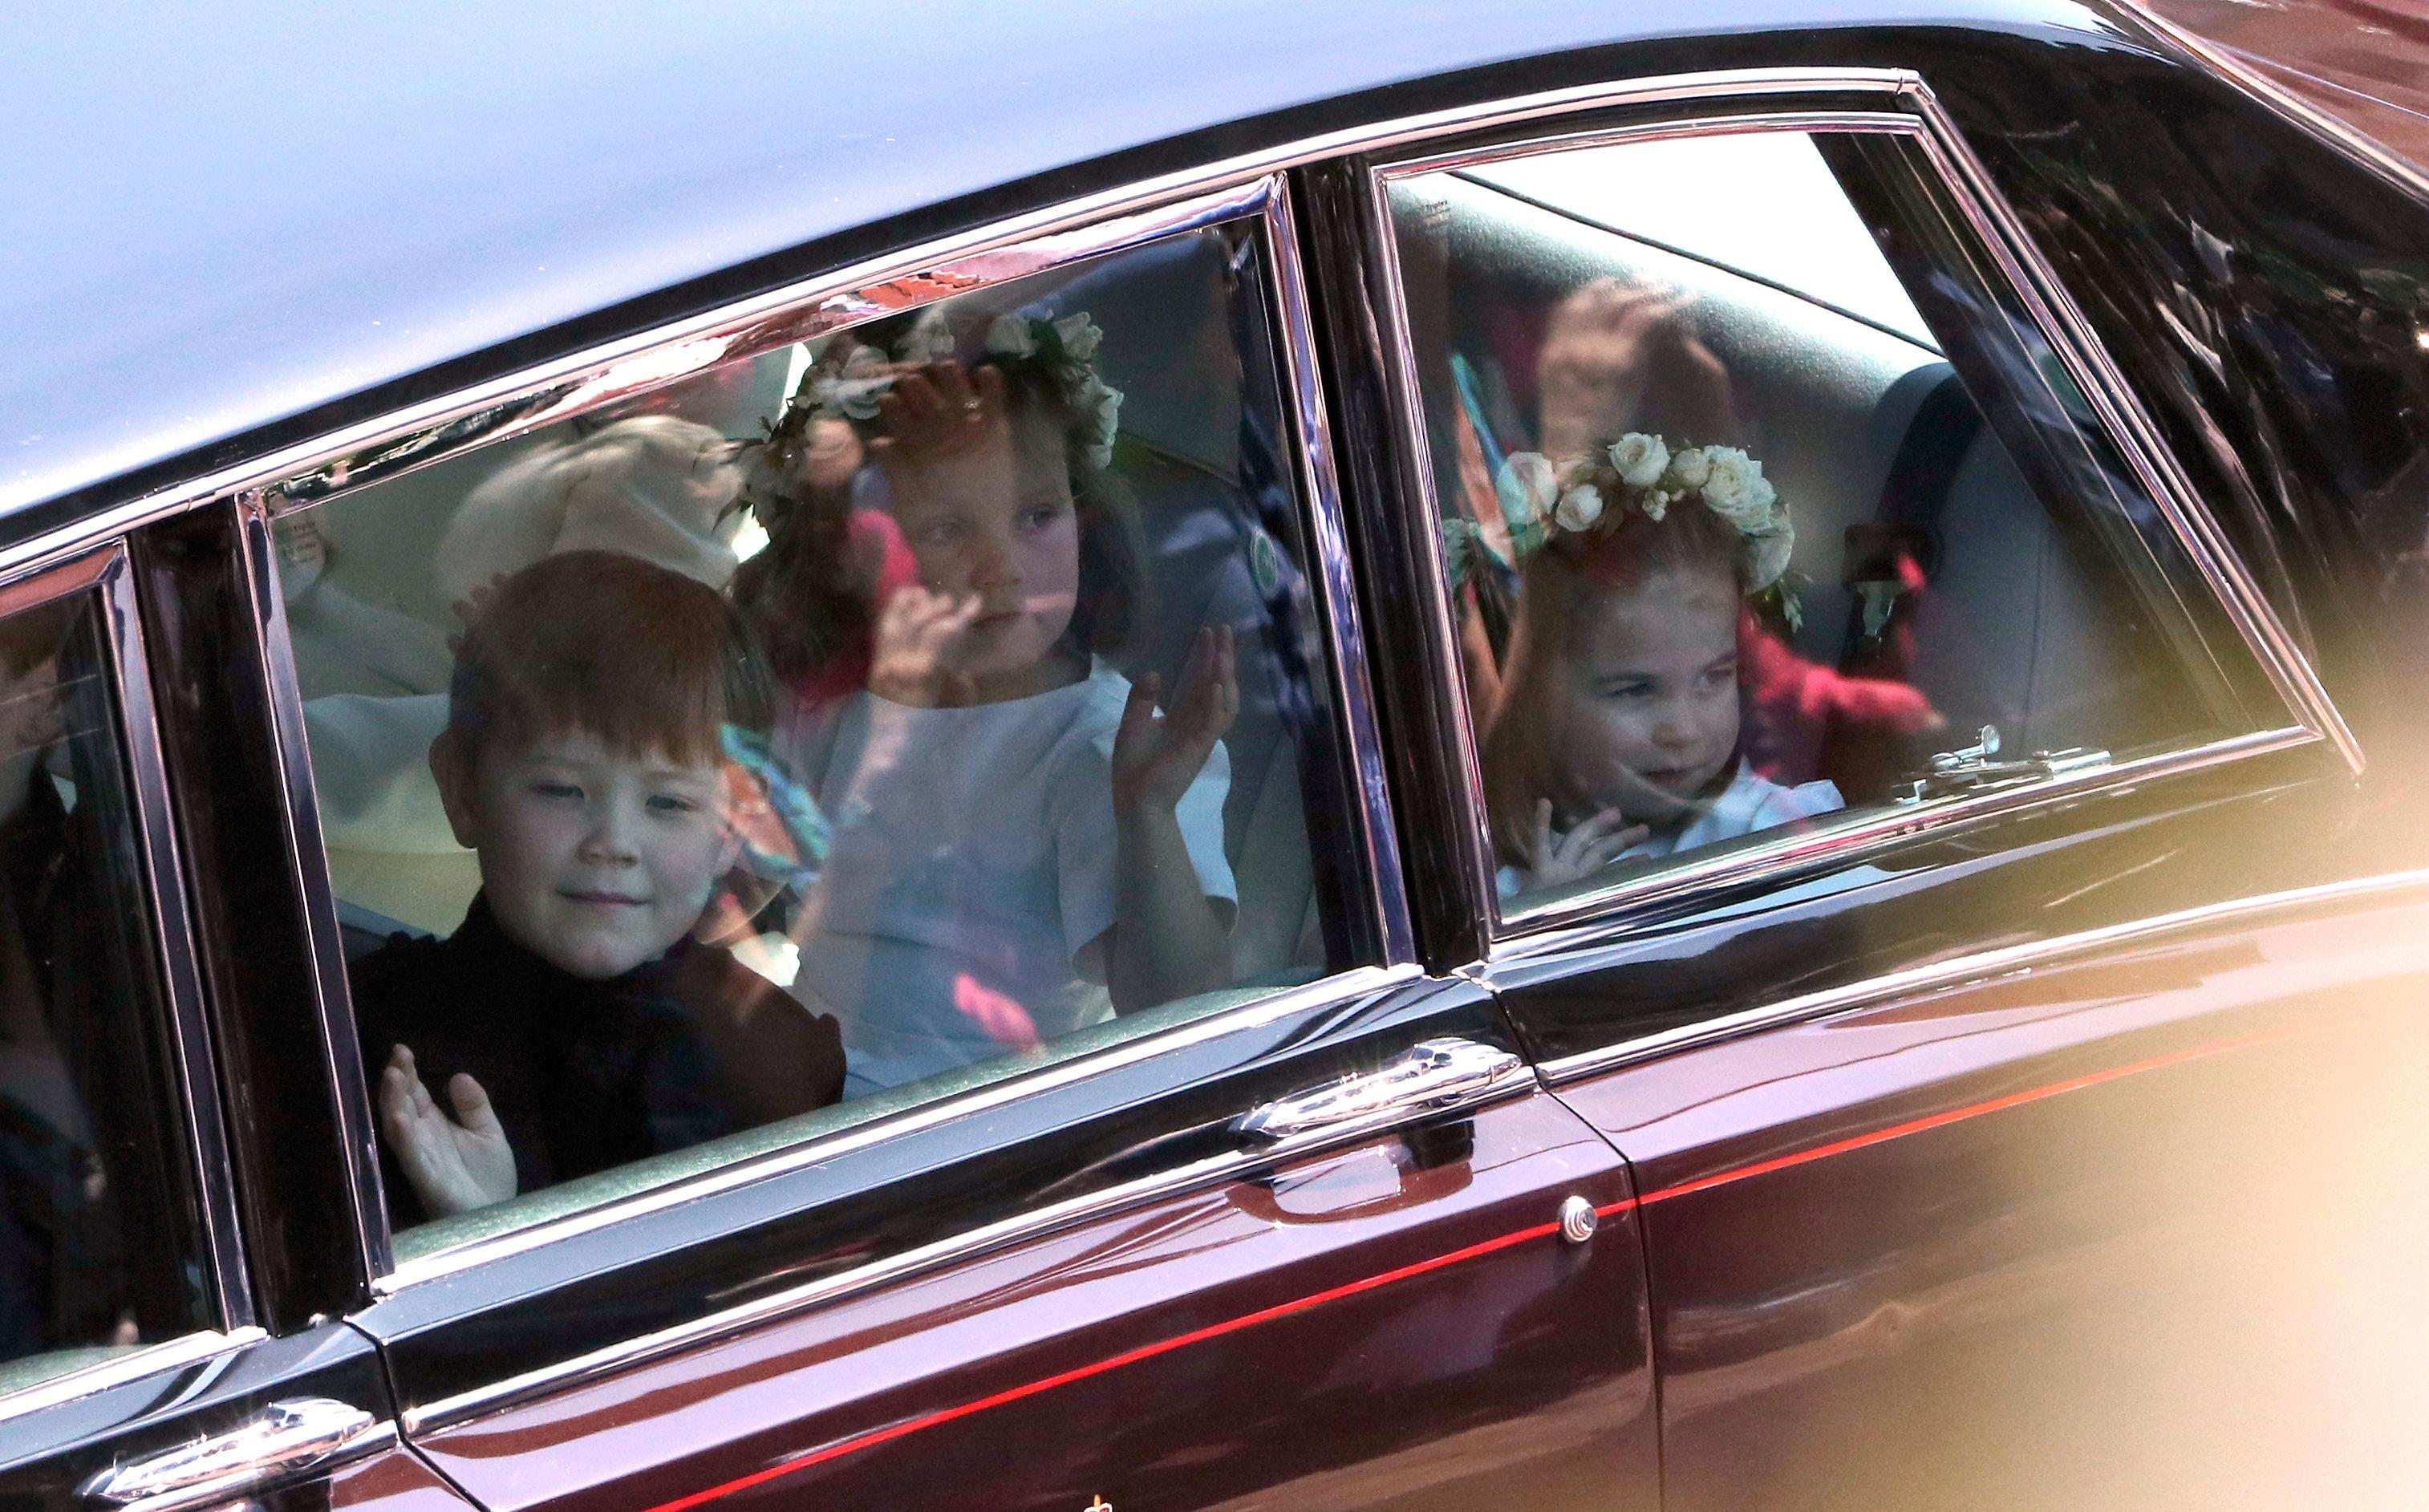 Princess Charlotte, right, arrives for the wedding ceremony of Prince Harry and Meghan Markle at St. George's Chapel in Windsor Castle in Windsor, near London, England, Saturday, May 19, 2018. (Andrew Matthews/pool photo via AP)